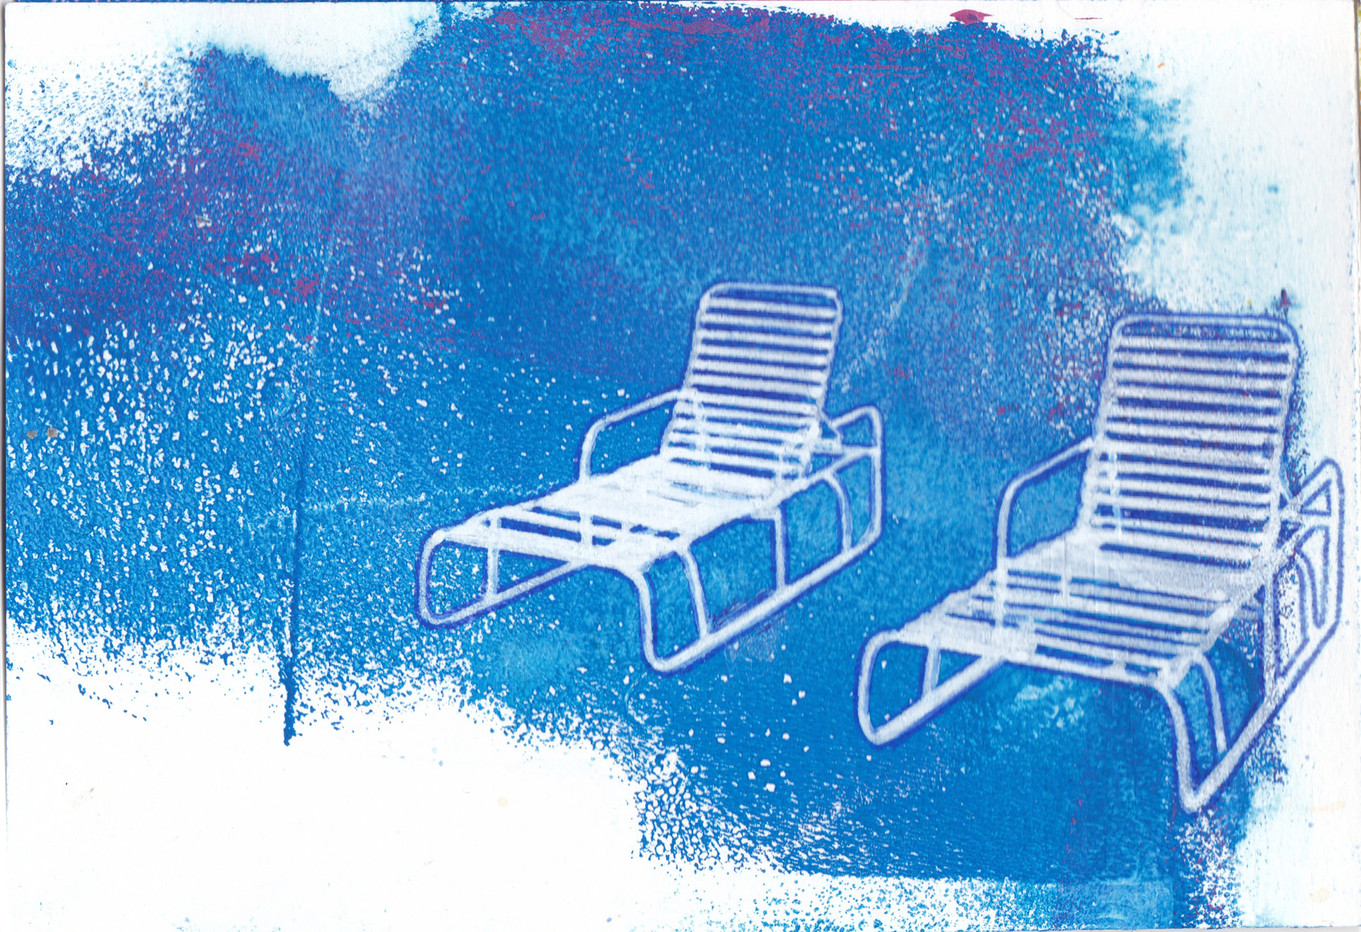 MONOPRINT CHAIR 1. 2017